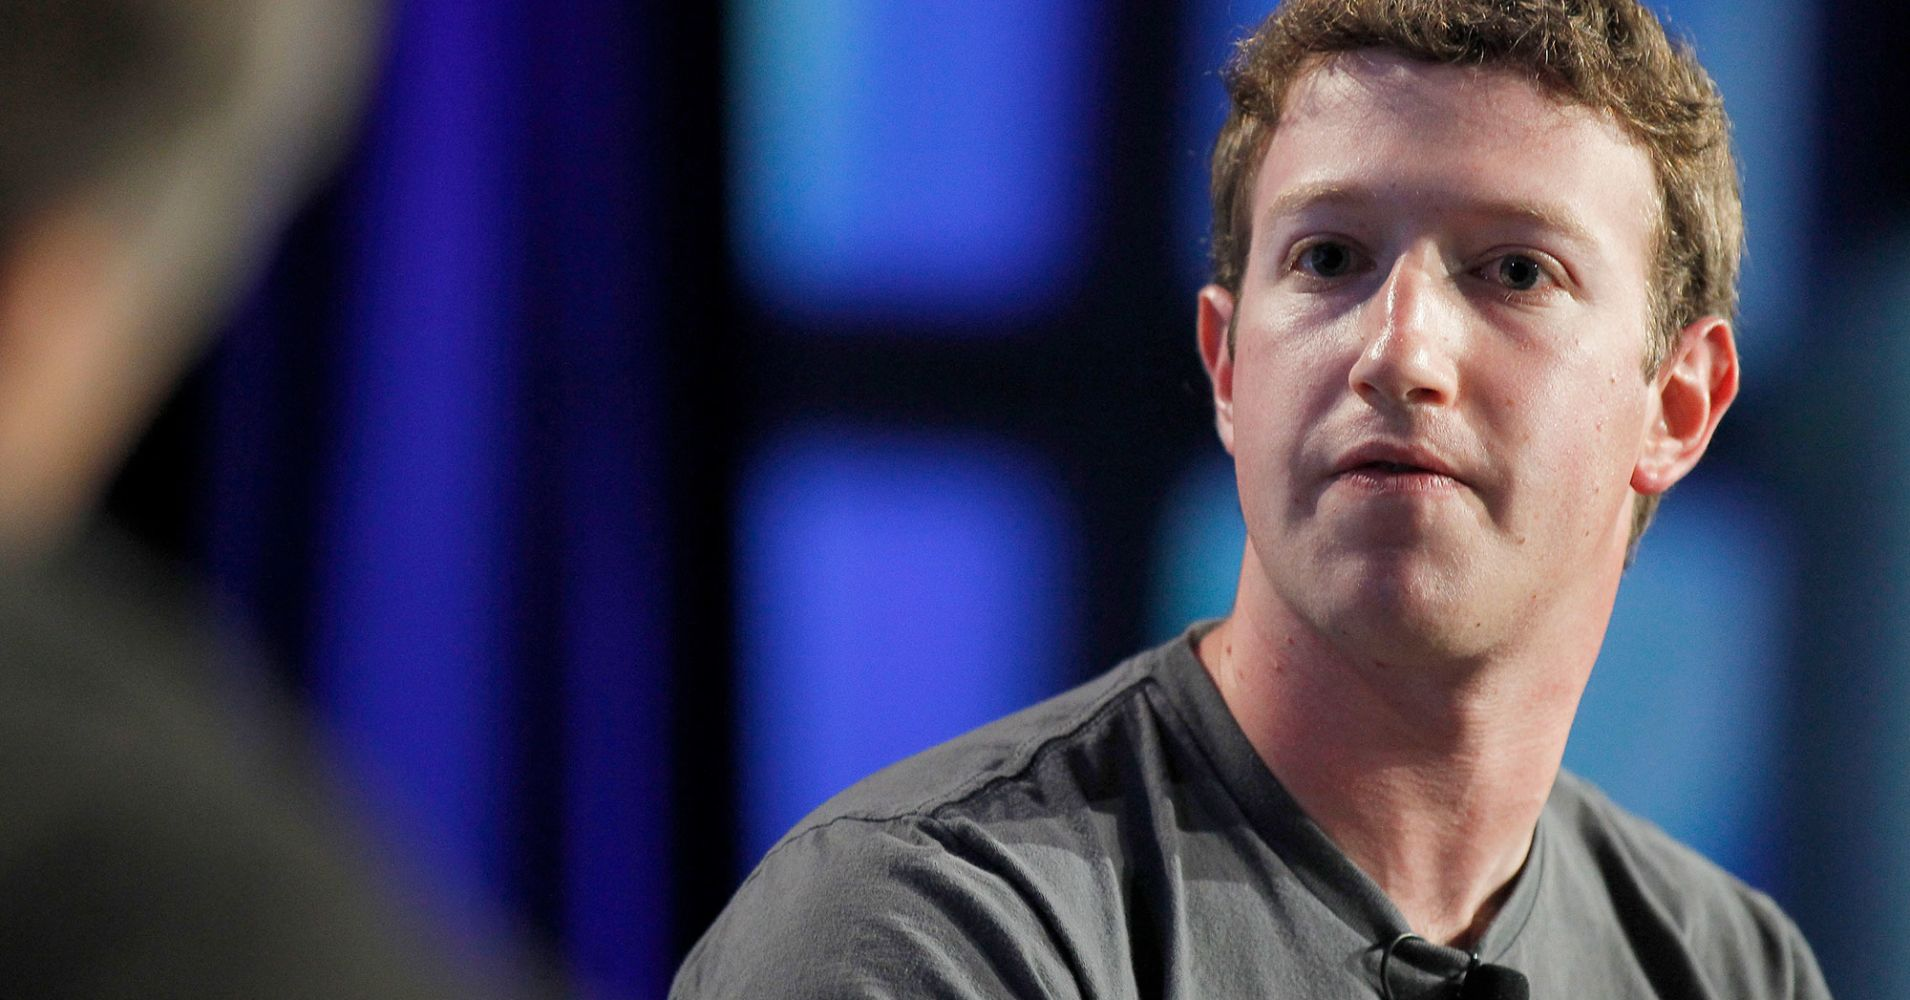 Facebook could be in violation of an FTC agreement after the latest report on its privacy practices